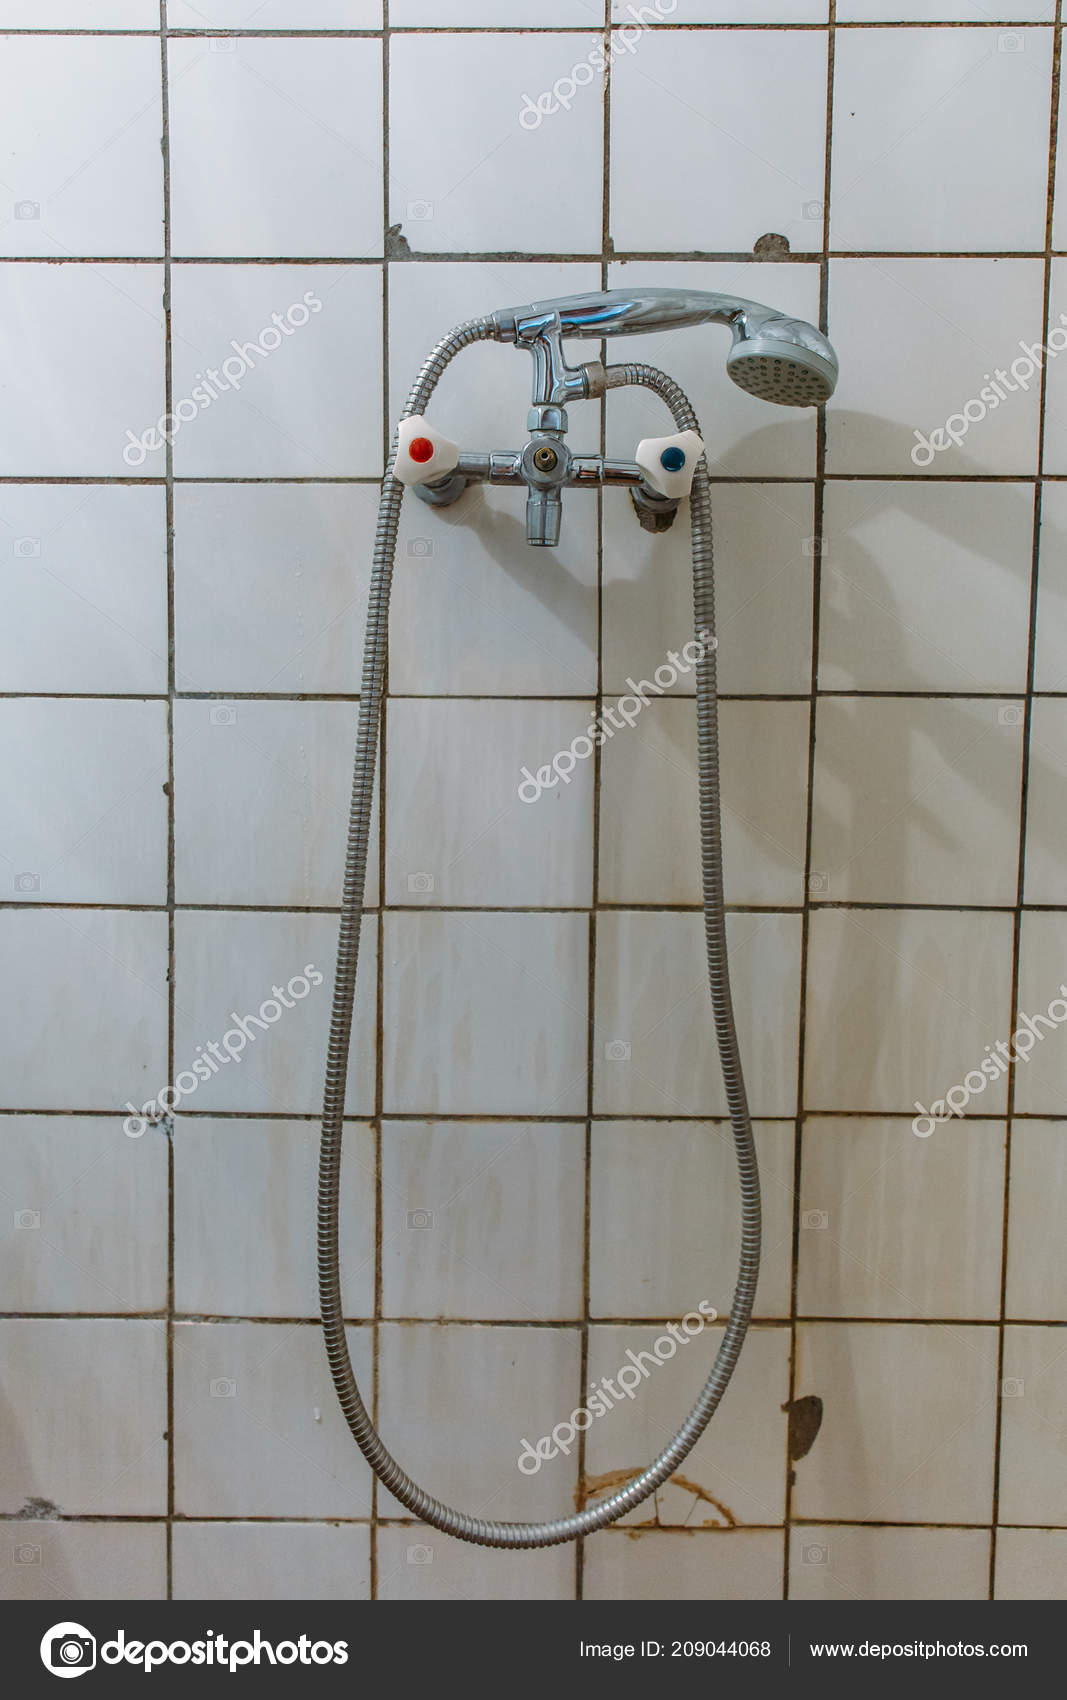 old steel shower faucet at white vintage tile background stock photo image by c dedmityay 209044068